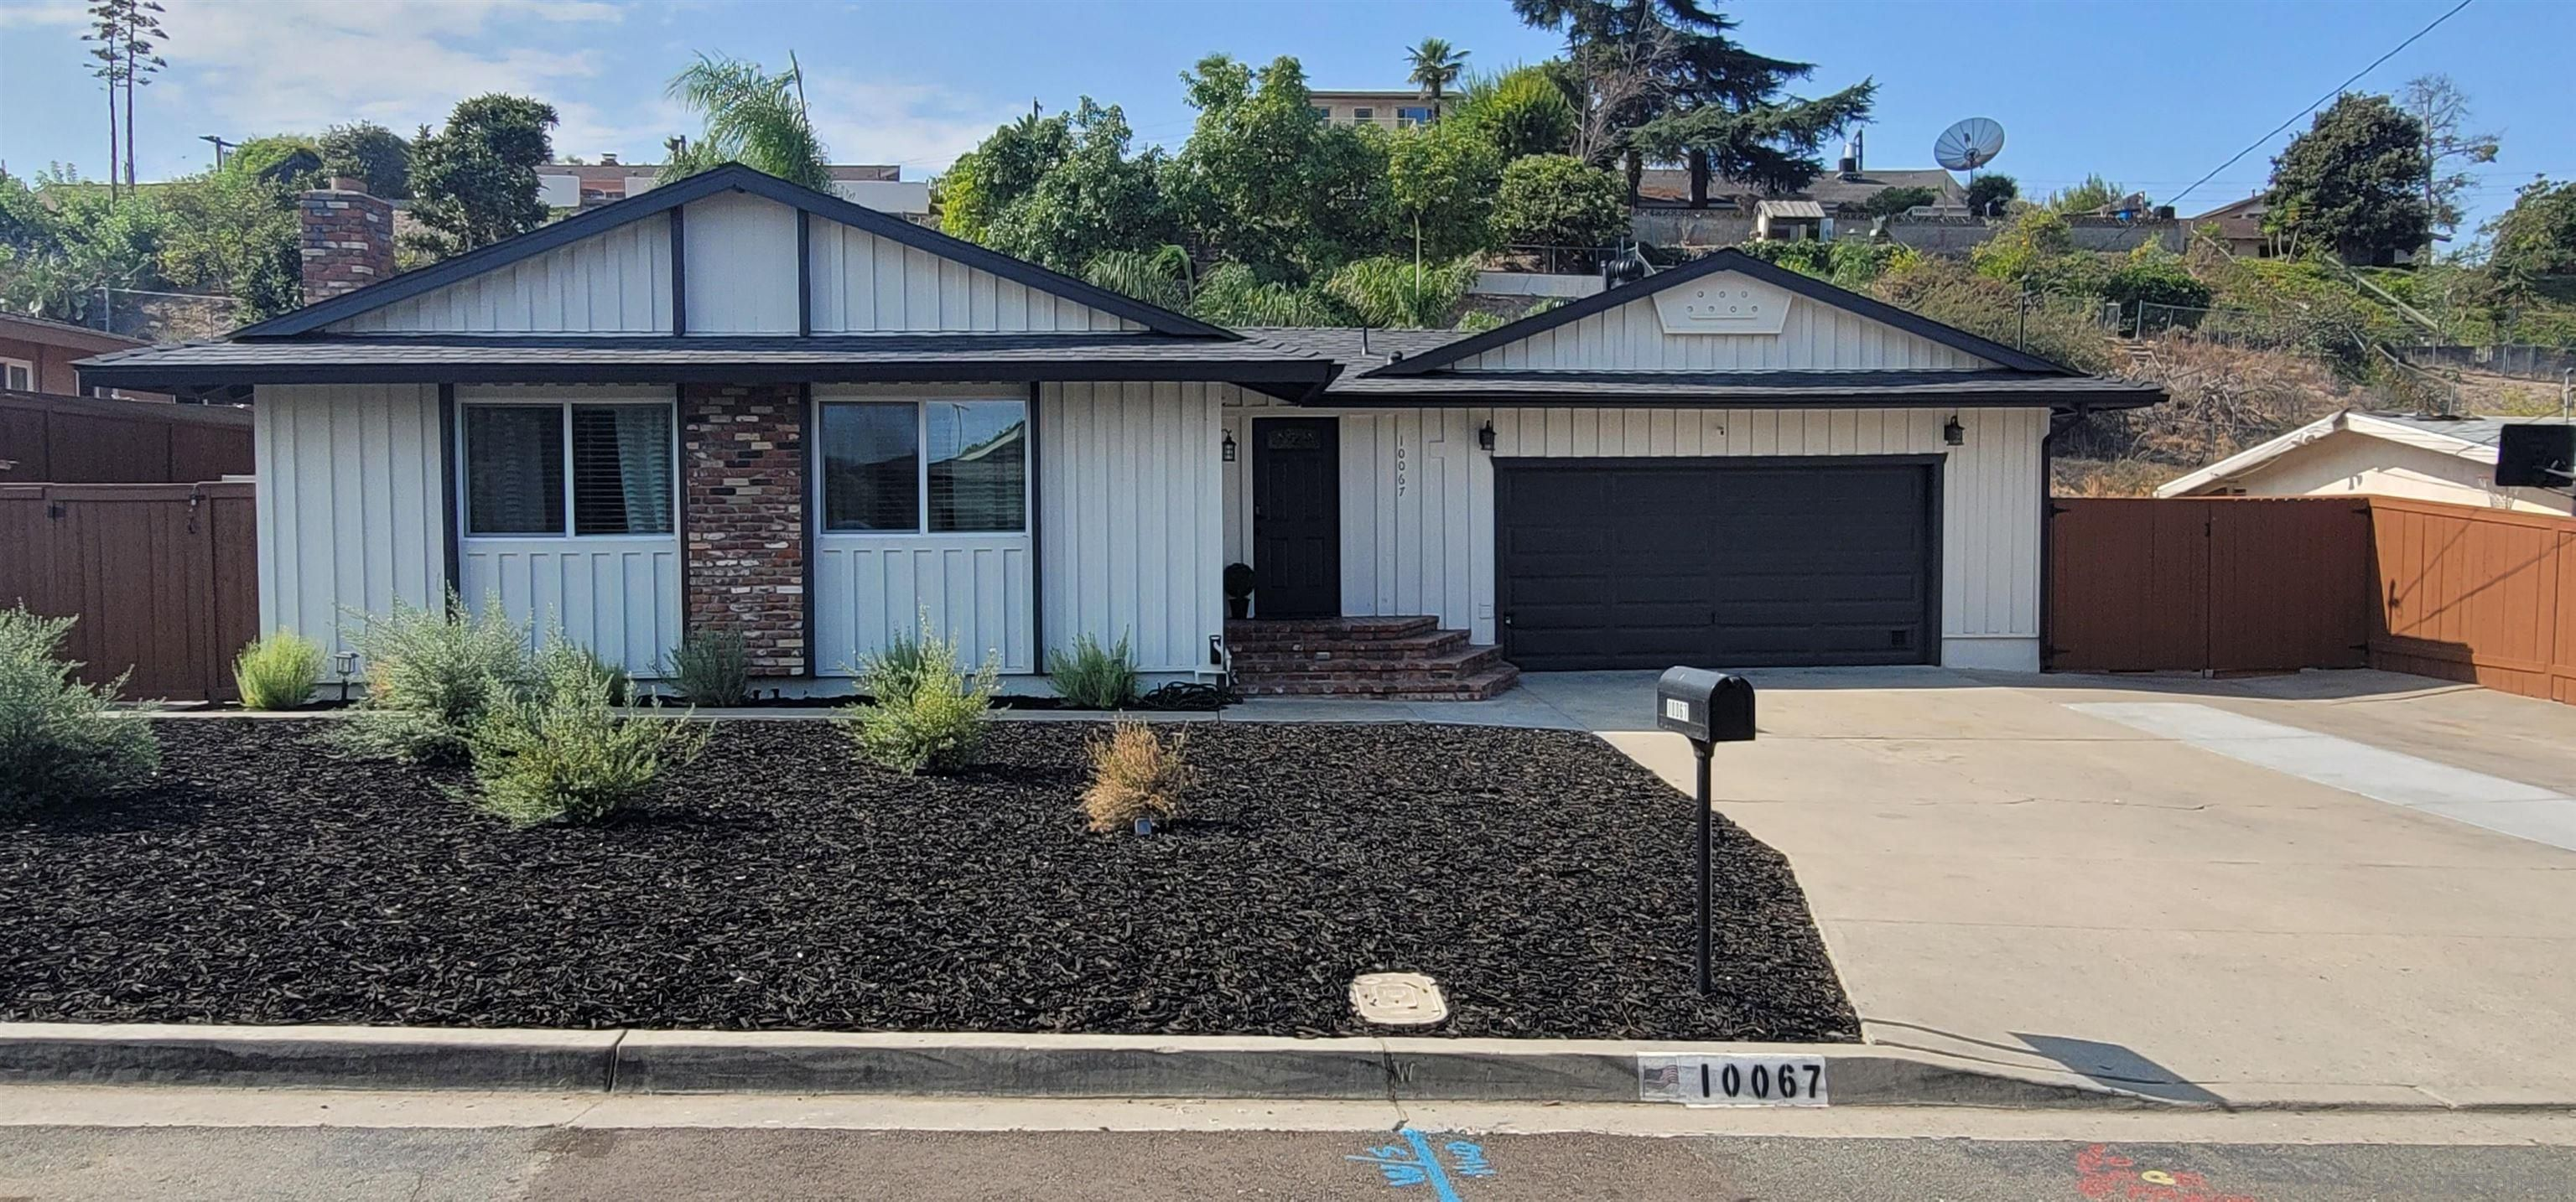 Main Photo: SPRING VALLEY House for sale : 4 bedrooms : 10067 Diversion Dr